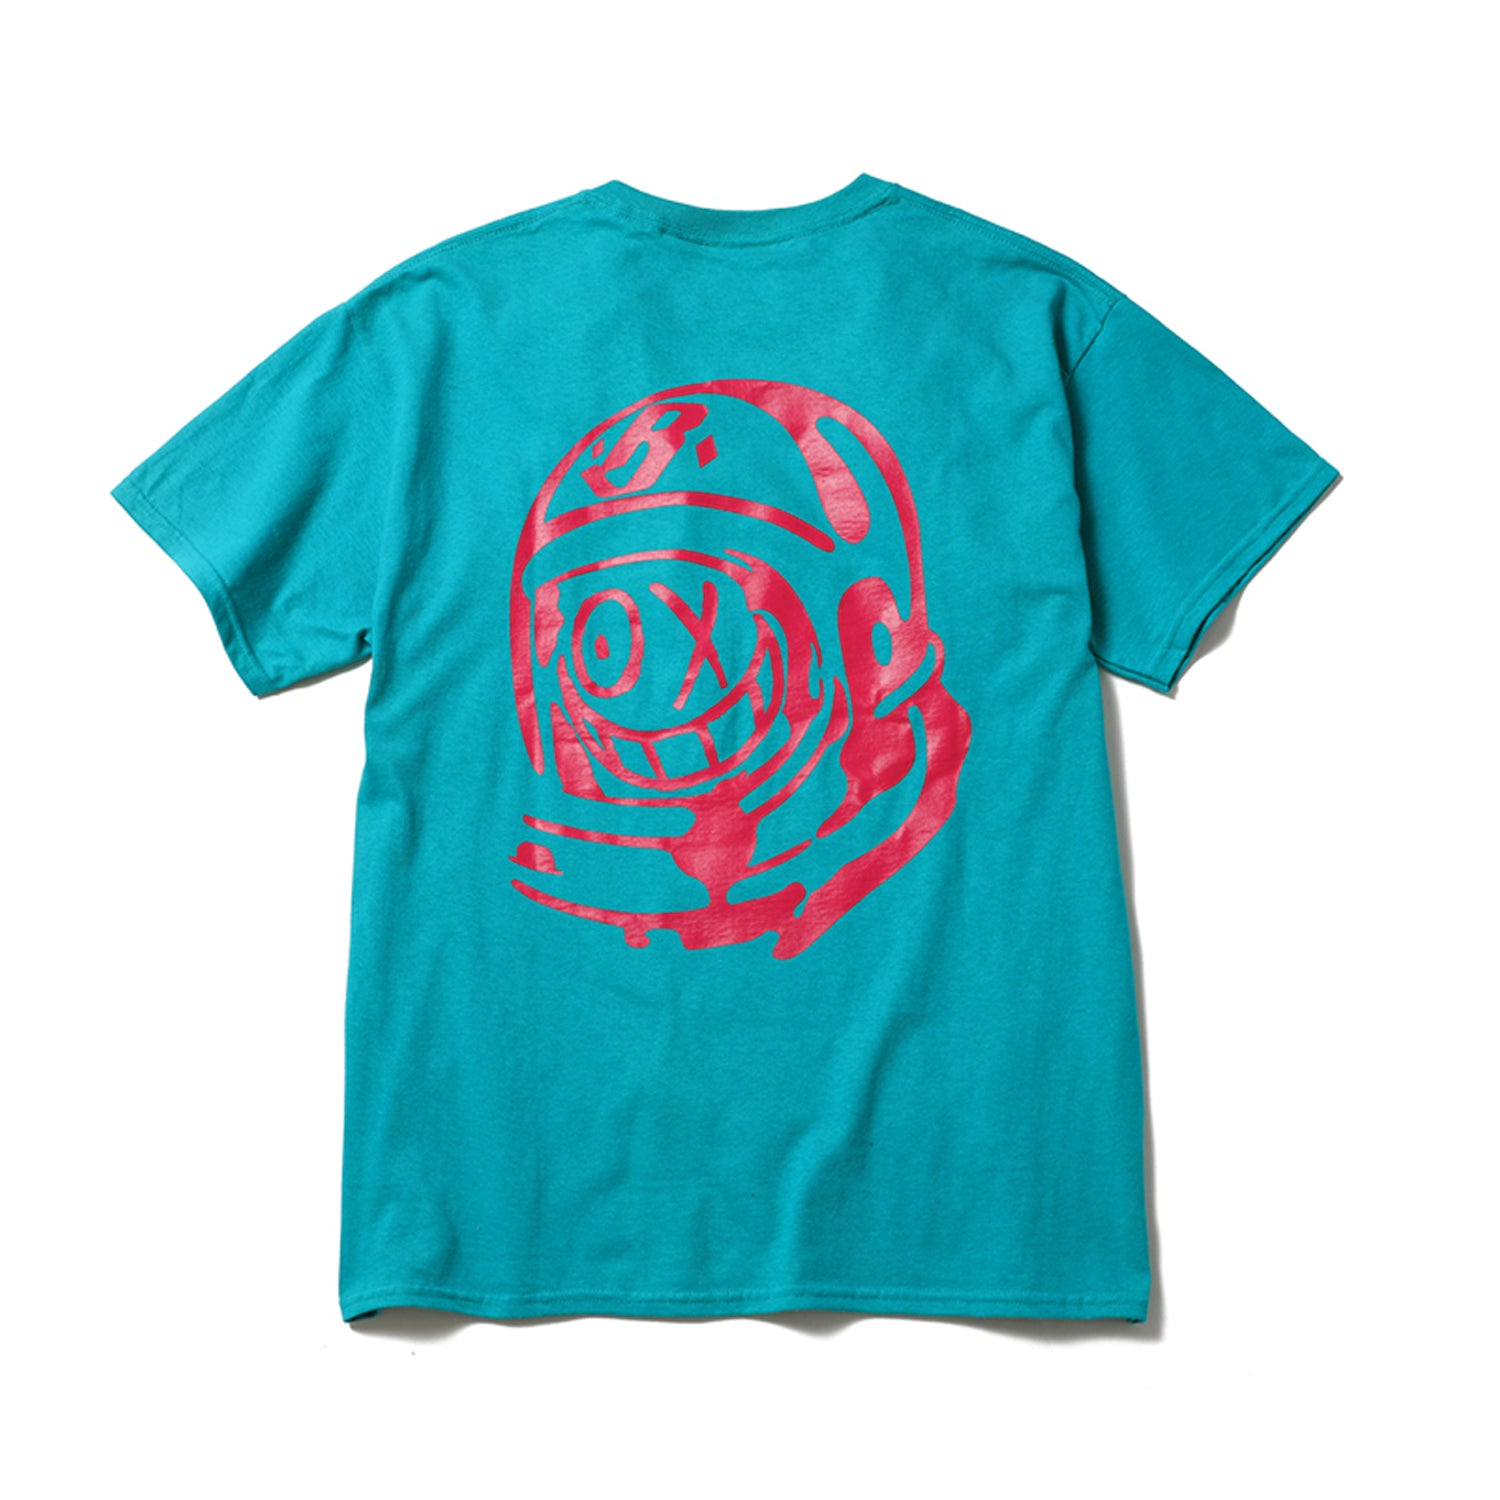 BILLIONAIRE BOYS CLUB X ANDRE SARAIVA COLLABORATION TSHIRT